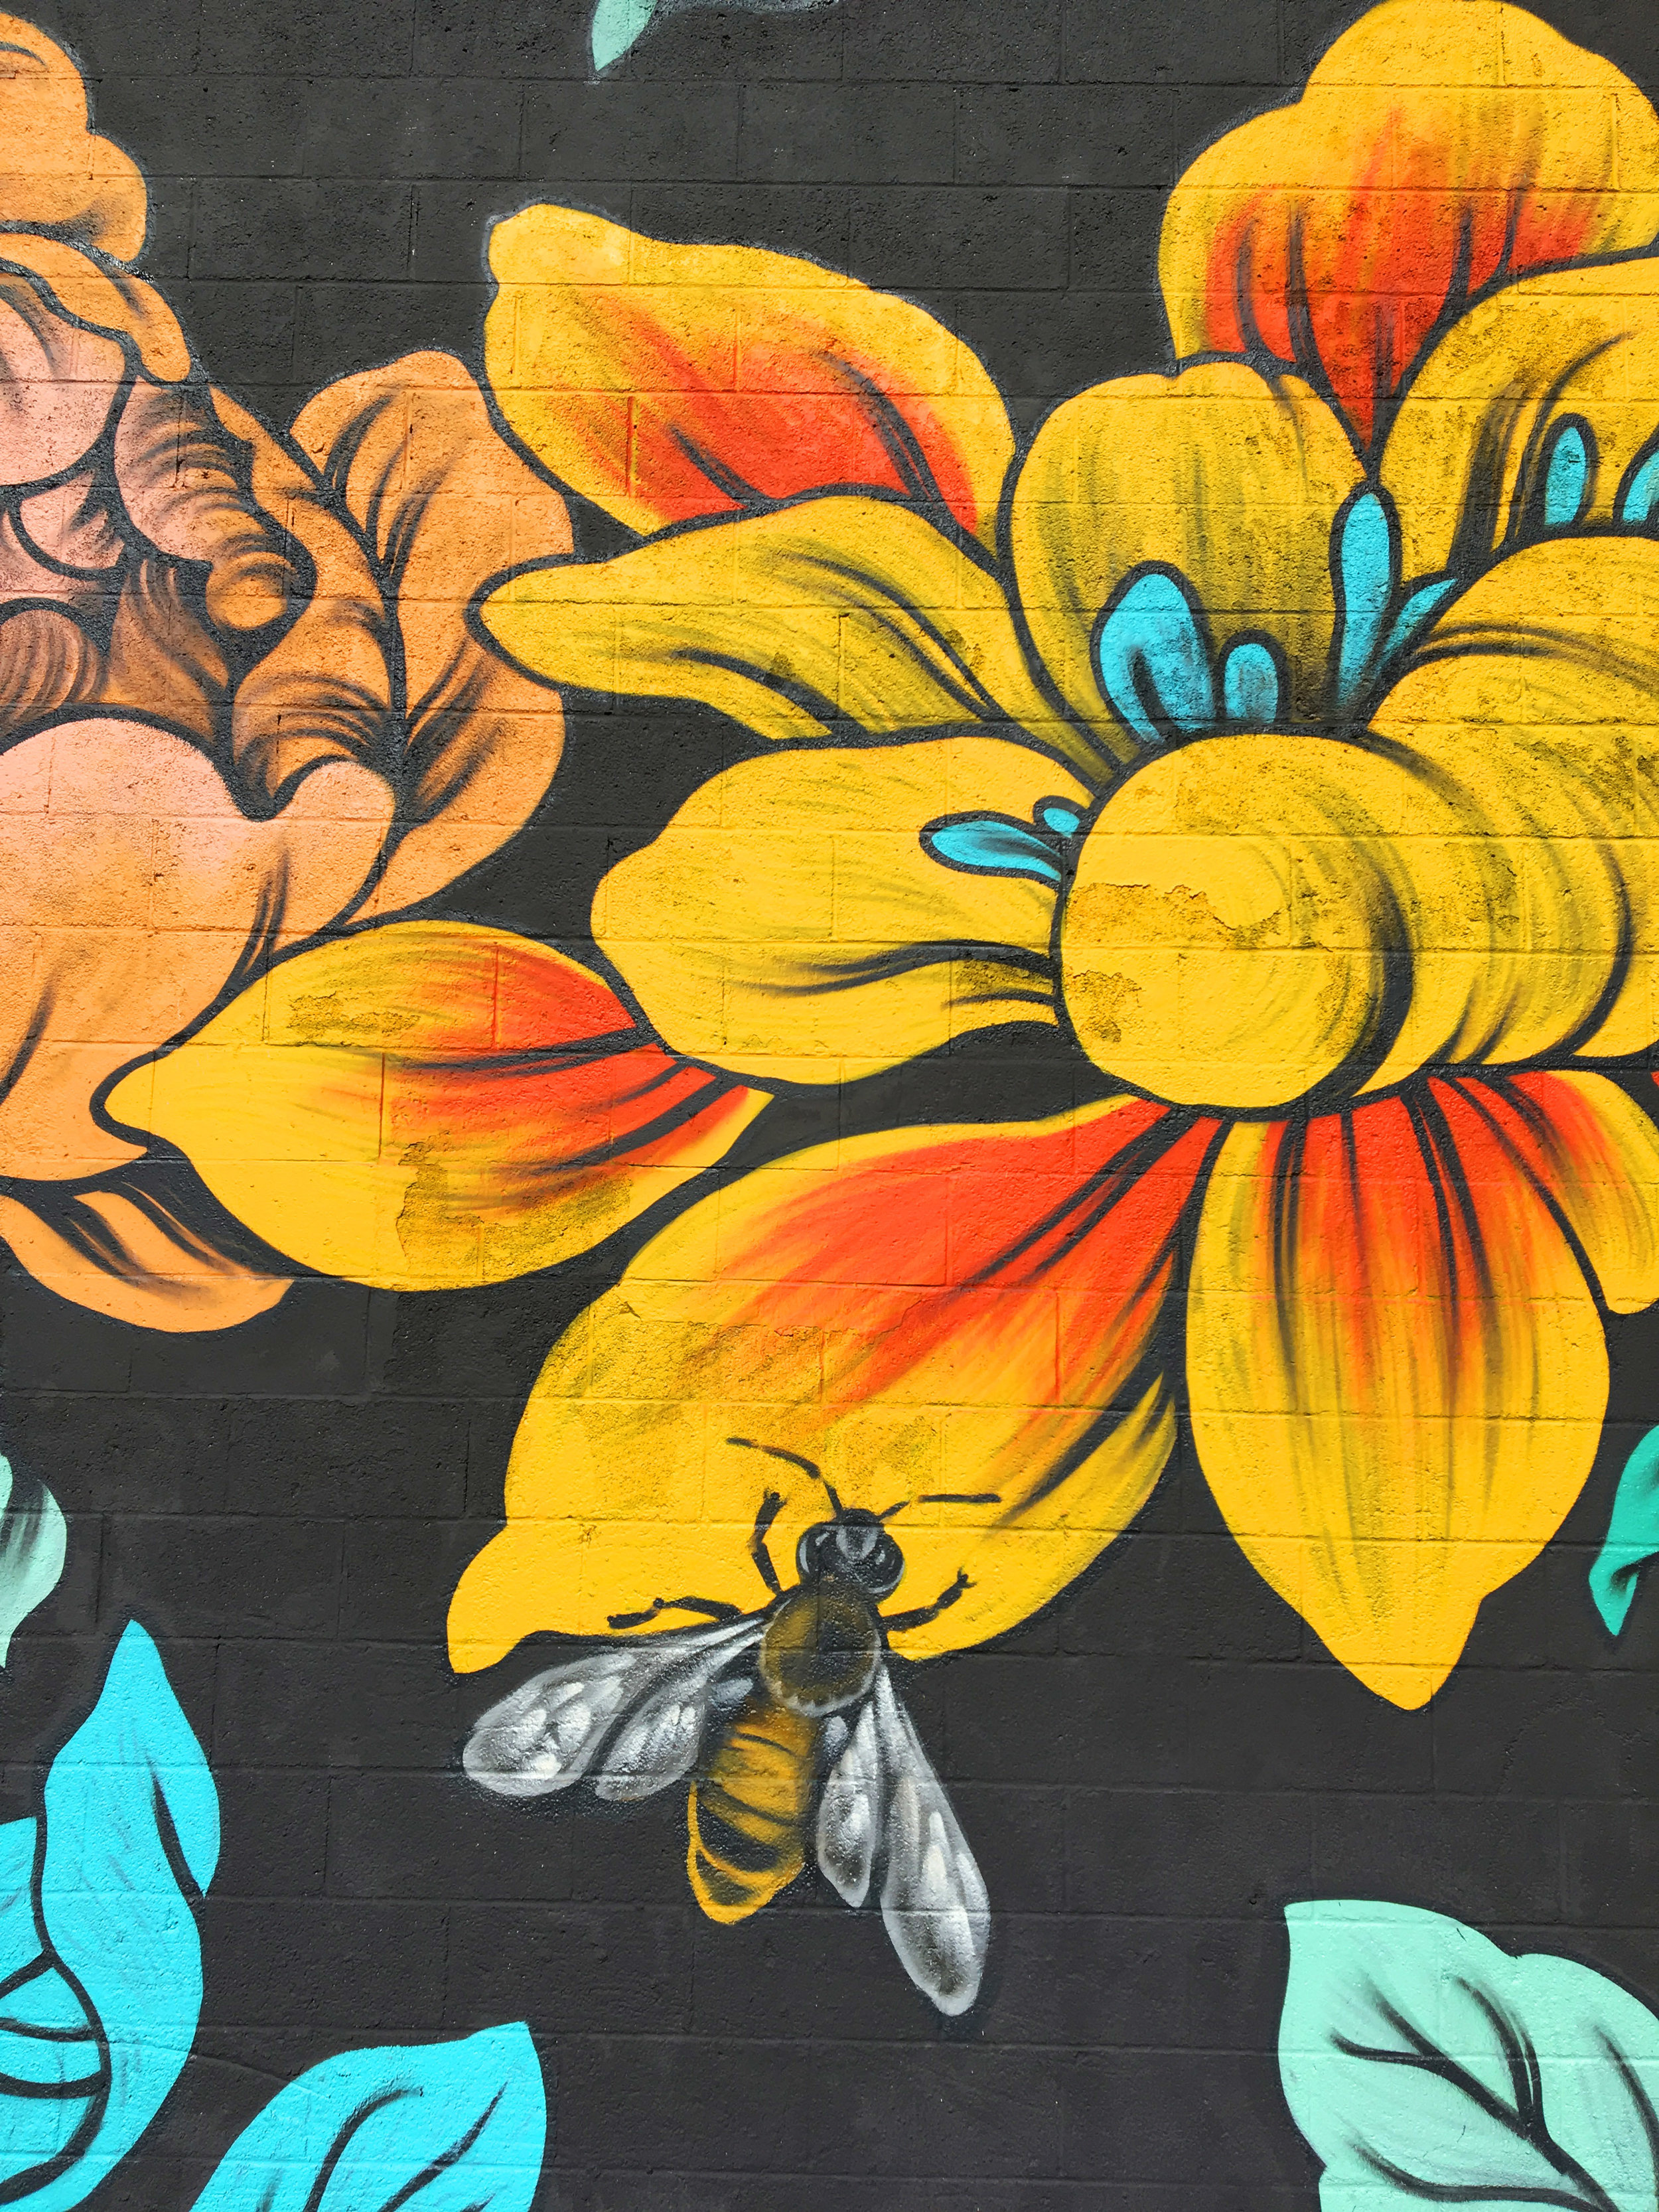 Detail of bee on flower for Ouizi mural on exterior of Grand Rapids Ballet